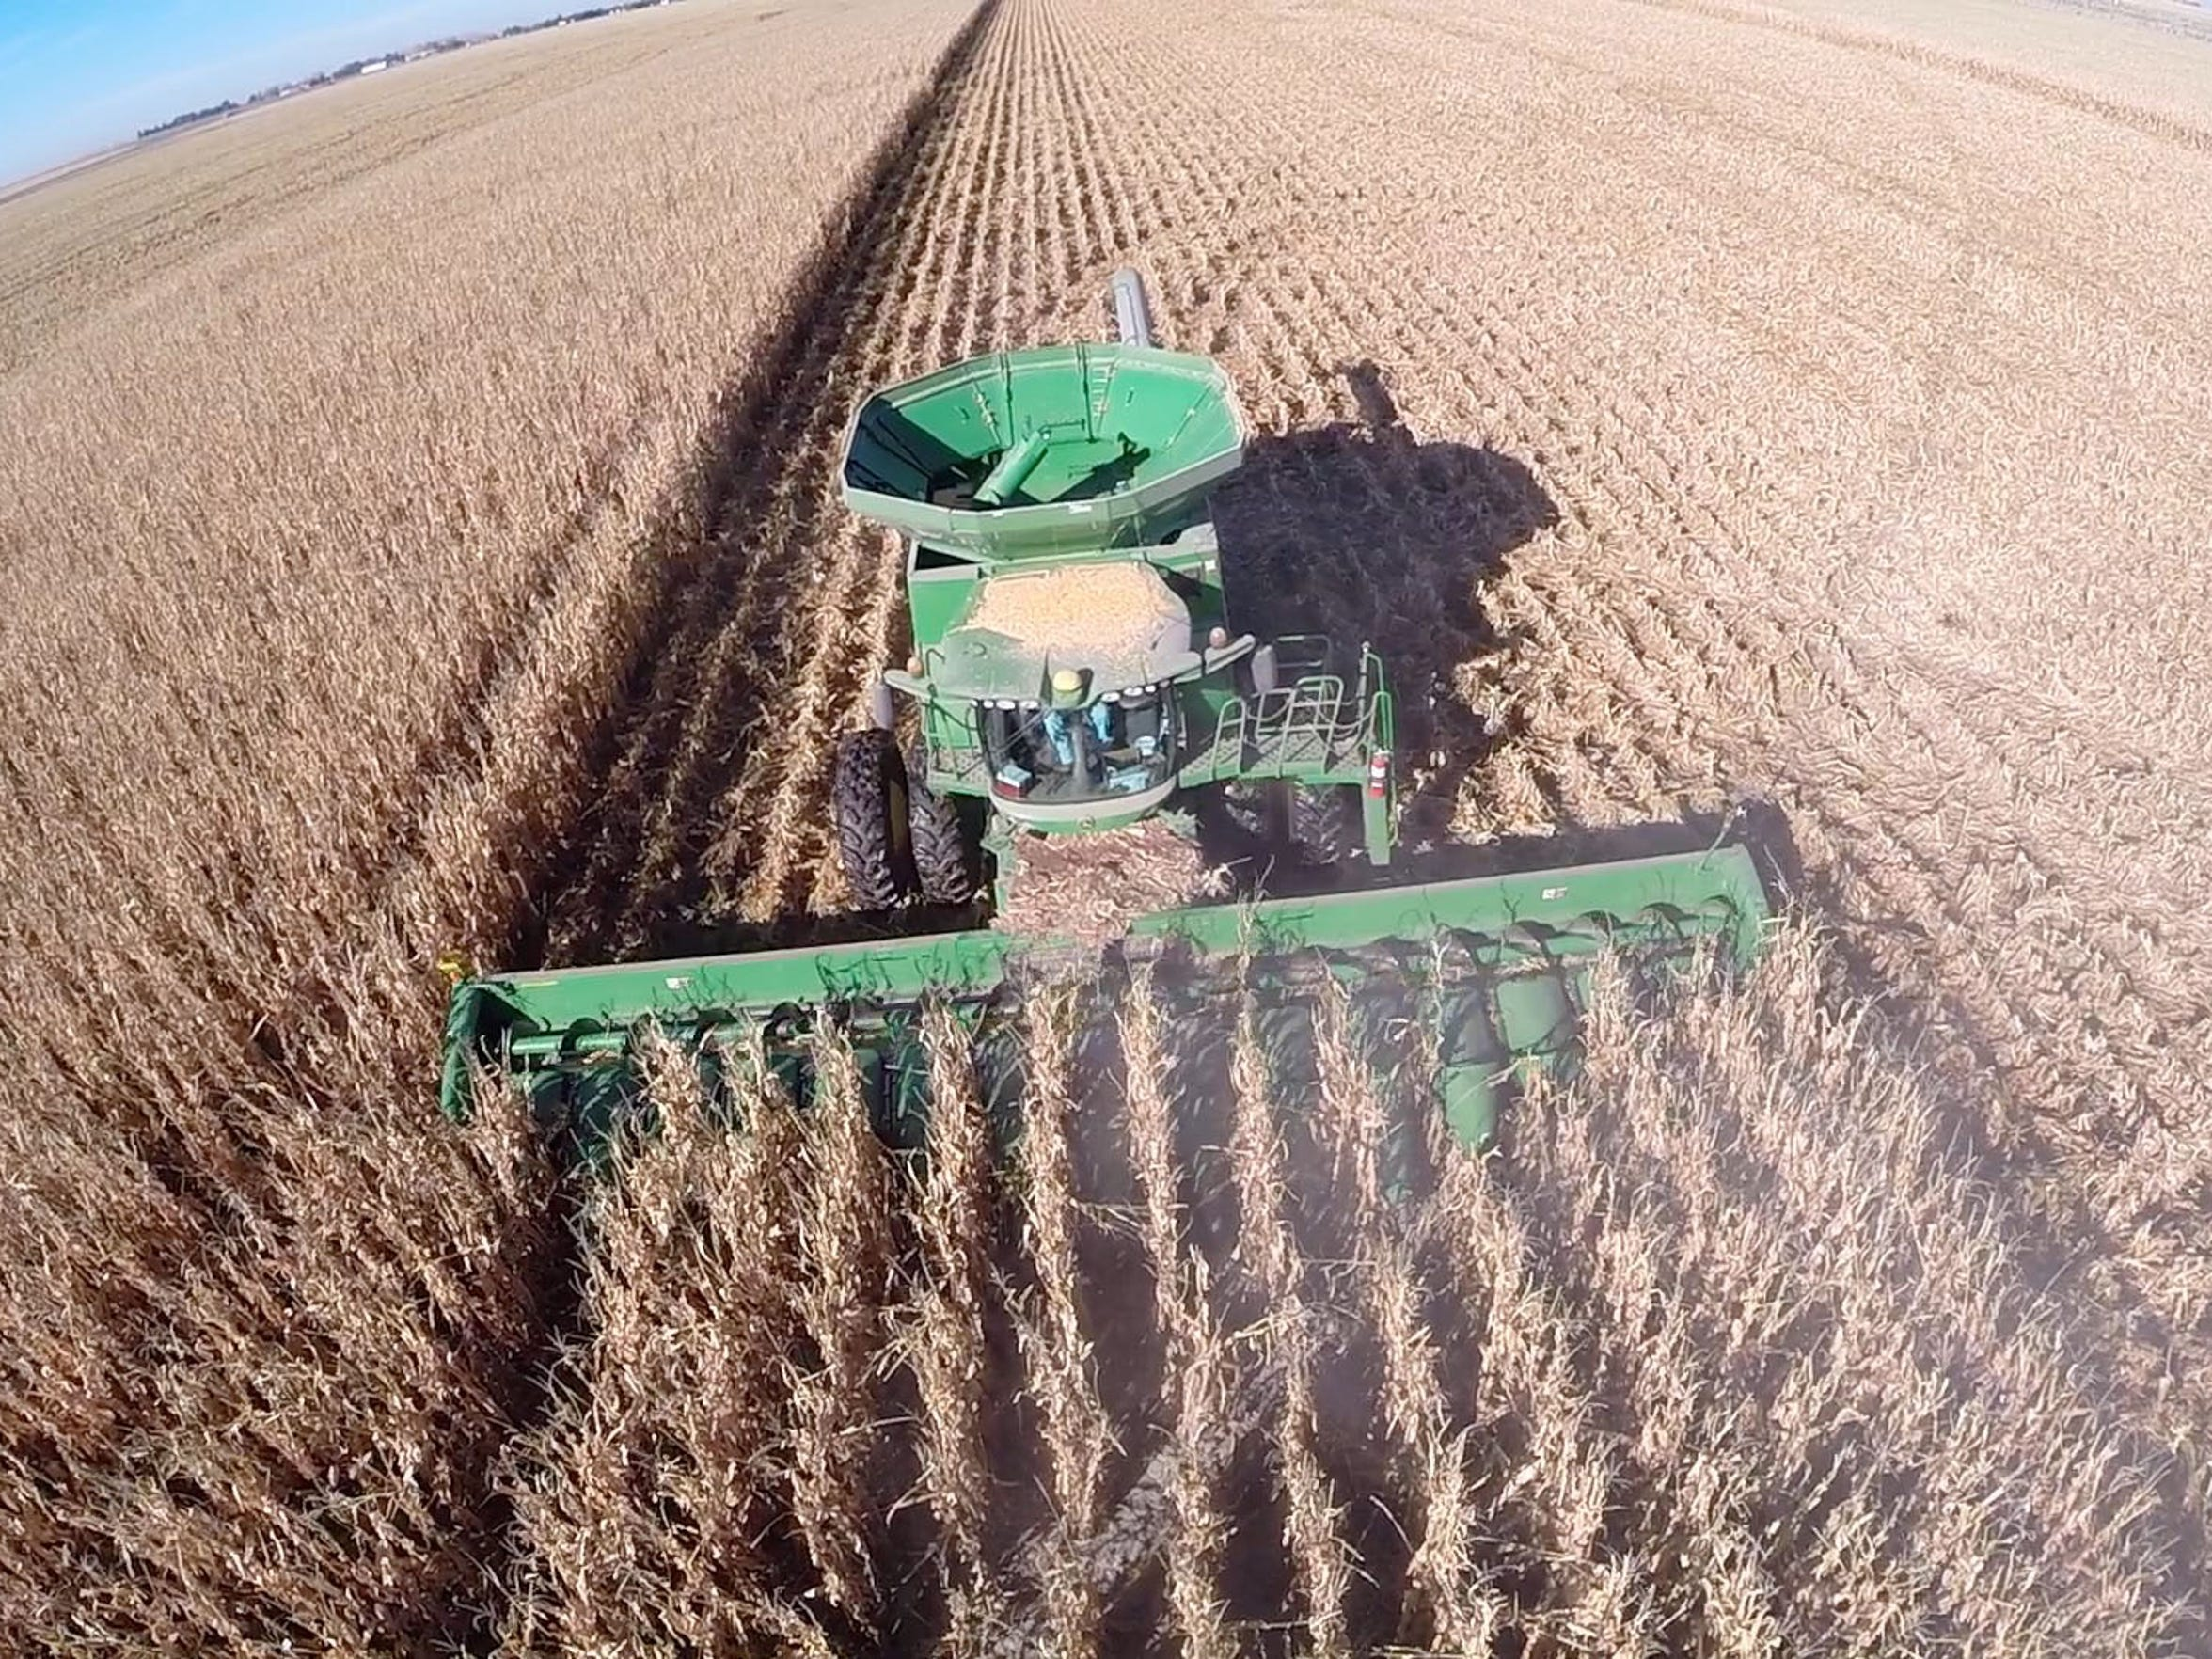 Corn for cattle feed is harvested on the Garetson farm near Sublette, Kansas. Jared Garetson, 17, flies his drone to capture the action. He says he's concerned that if the severe depletion of the Ogallala Aquifer continues unchecked, it will be increasingly difficult to keep irrigating the area's farmland in the future.